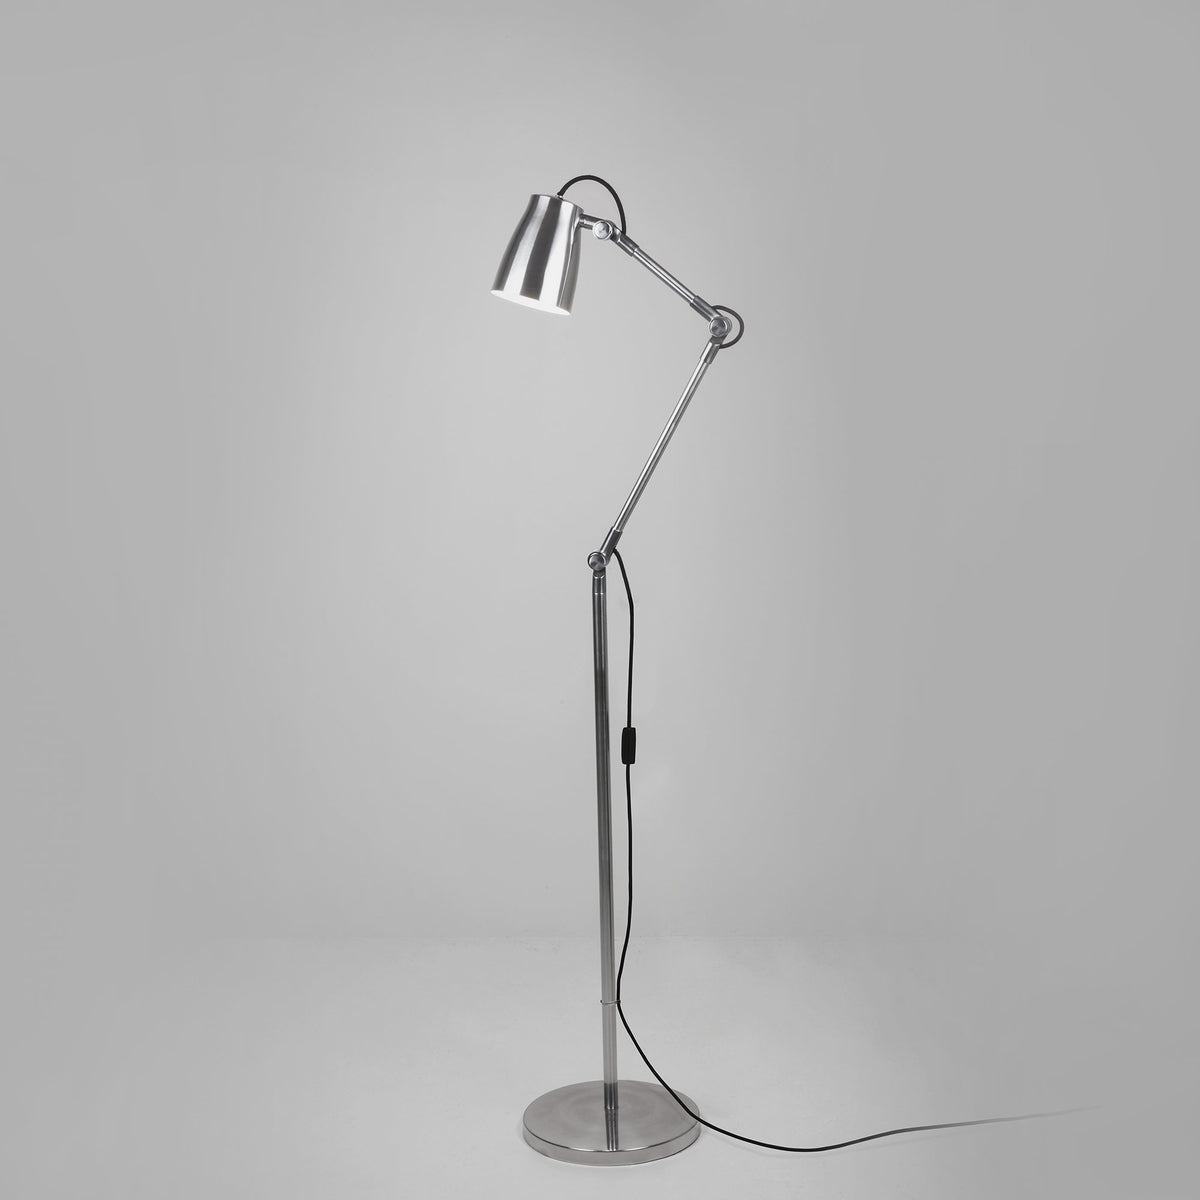 Astro Lighting Atelier Floor Lamp Polished Aluminium